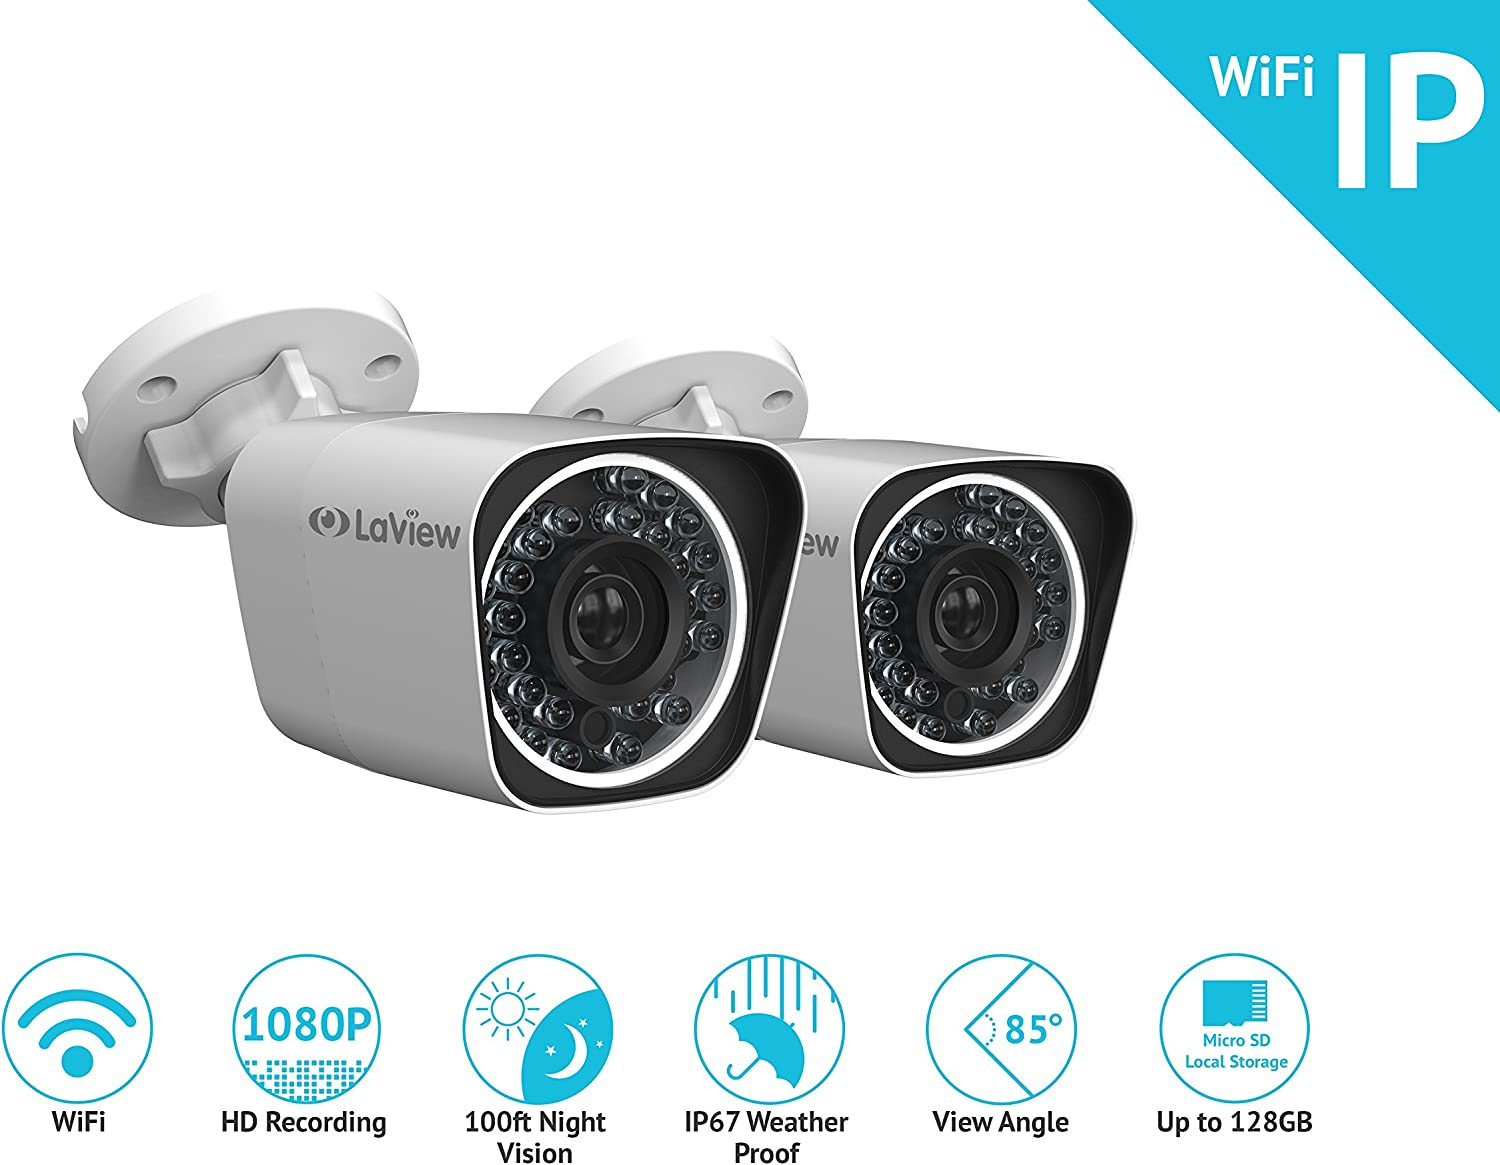 LaView WiFi 1080P HD Bullet Camera Indoor / Outdoor Day / Night Built in MicroSD slot, Stand Alone Ready, IP67 Weather Proof - LV-KPCW2BT